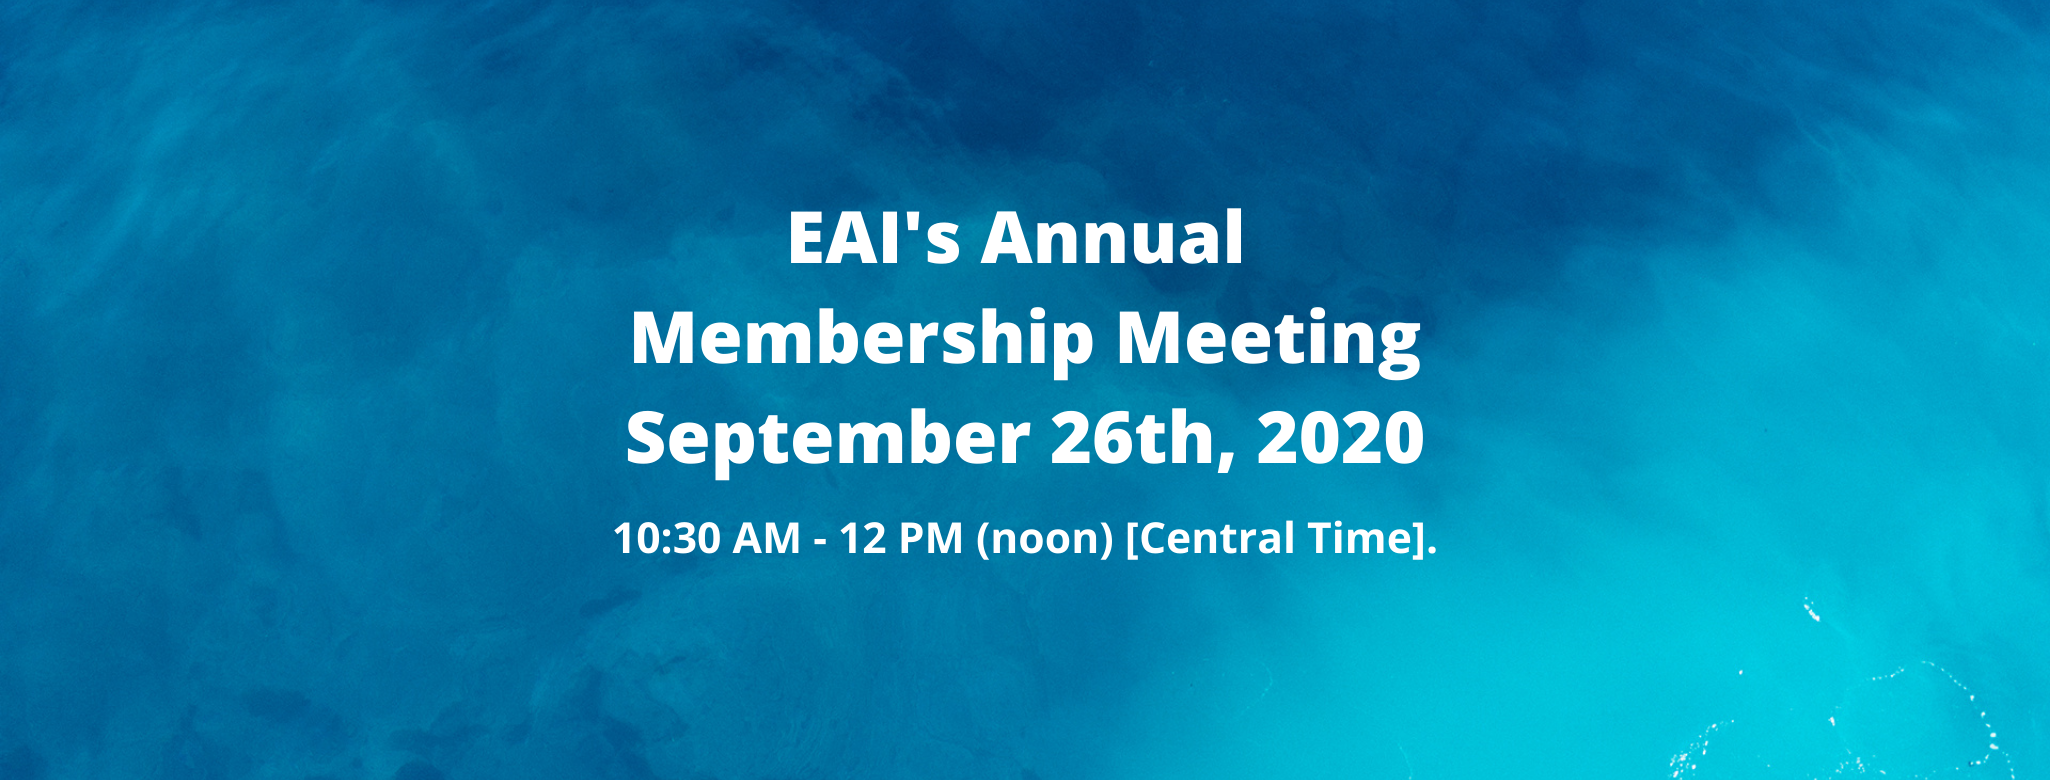 EAI Annual Membership Meeting - Saturday September 26th, 10:30 AM - 12 PM (noon) [Central Time].